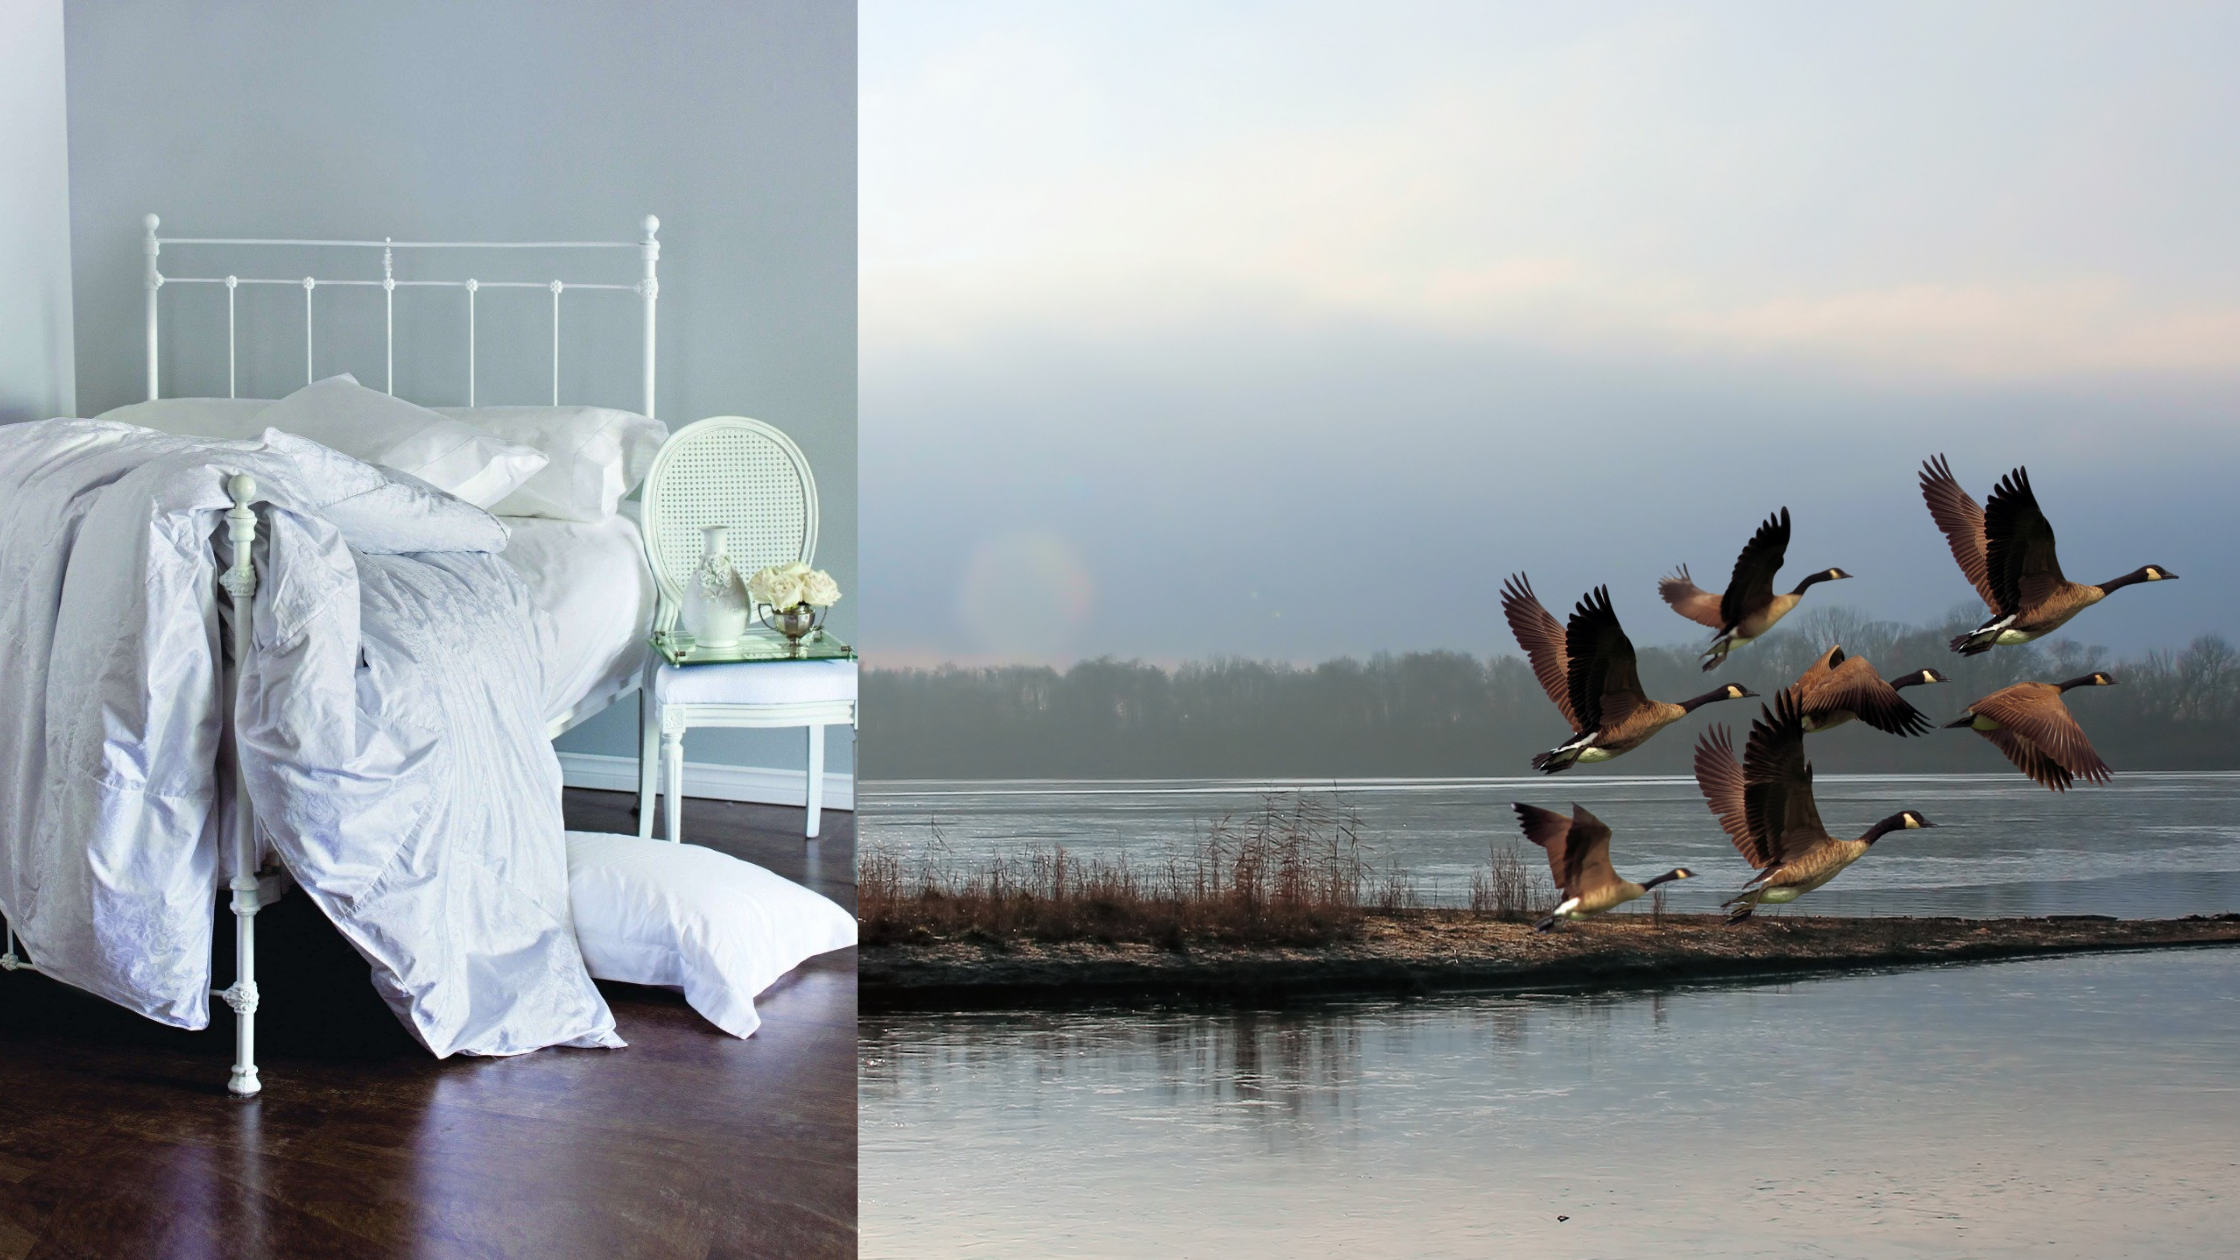 James Bay wild goose down duvet and wild geese